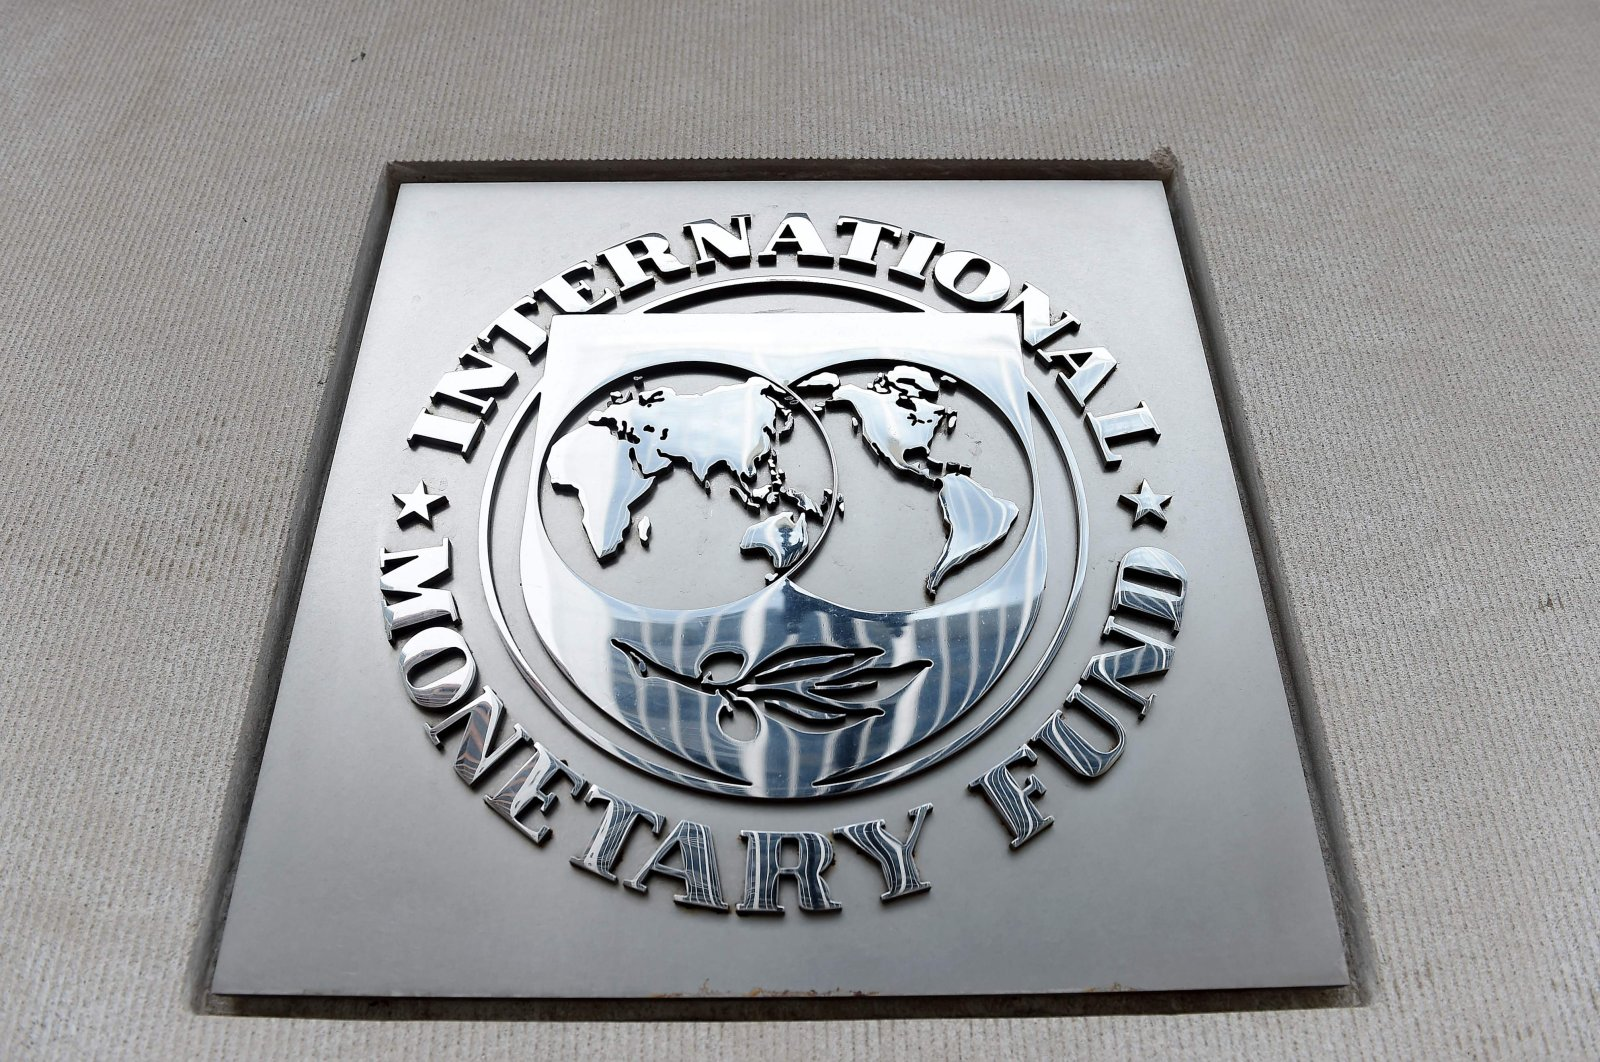 An exterior view of the building of the International Monetary Fund is seen in Washington, DC., Friday, March 27, 2020. (AFP Photo)